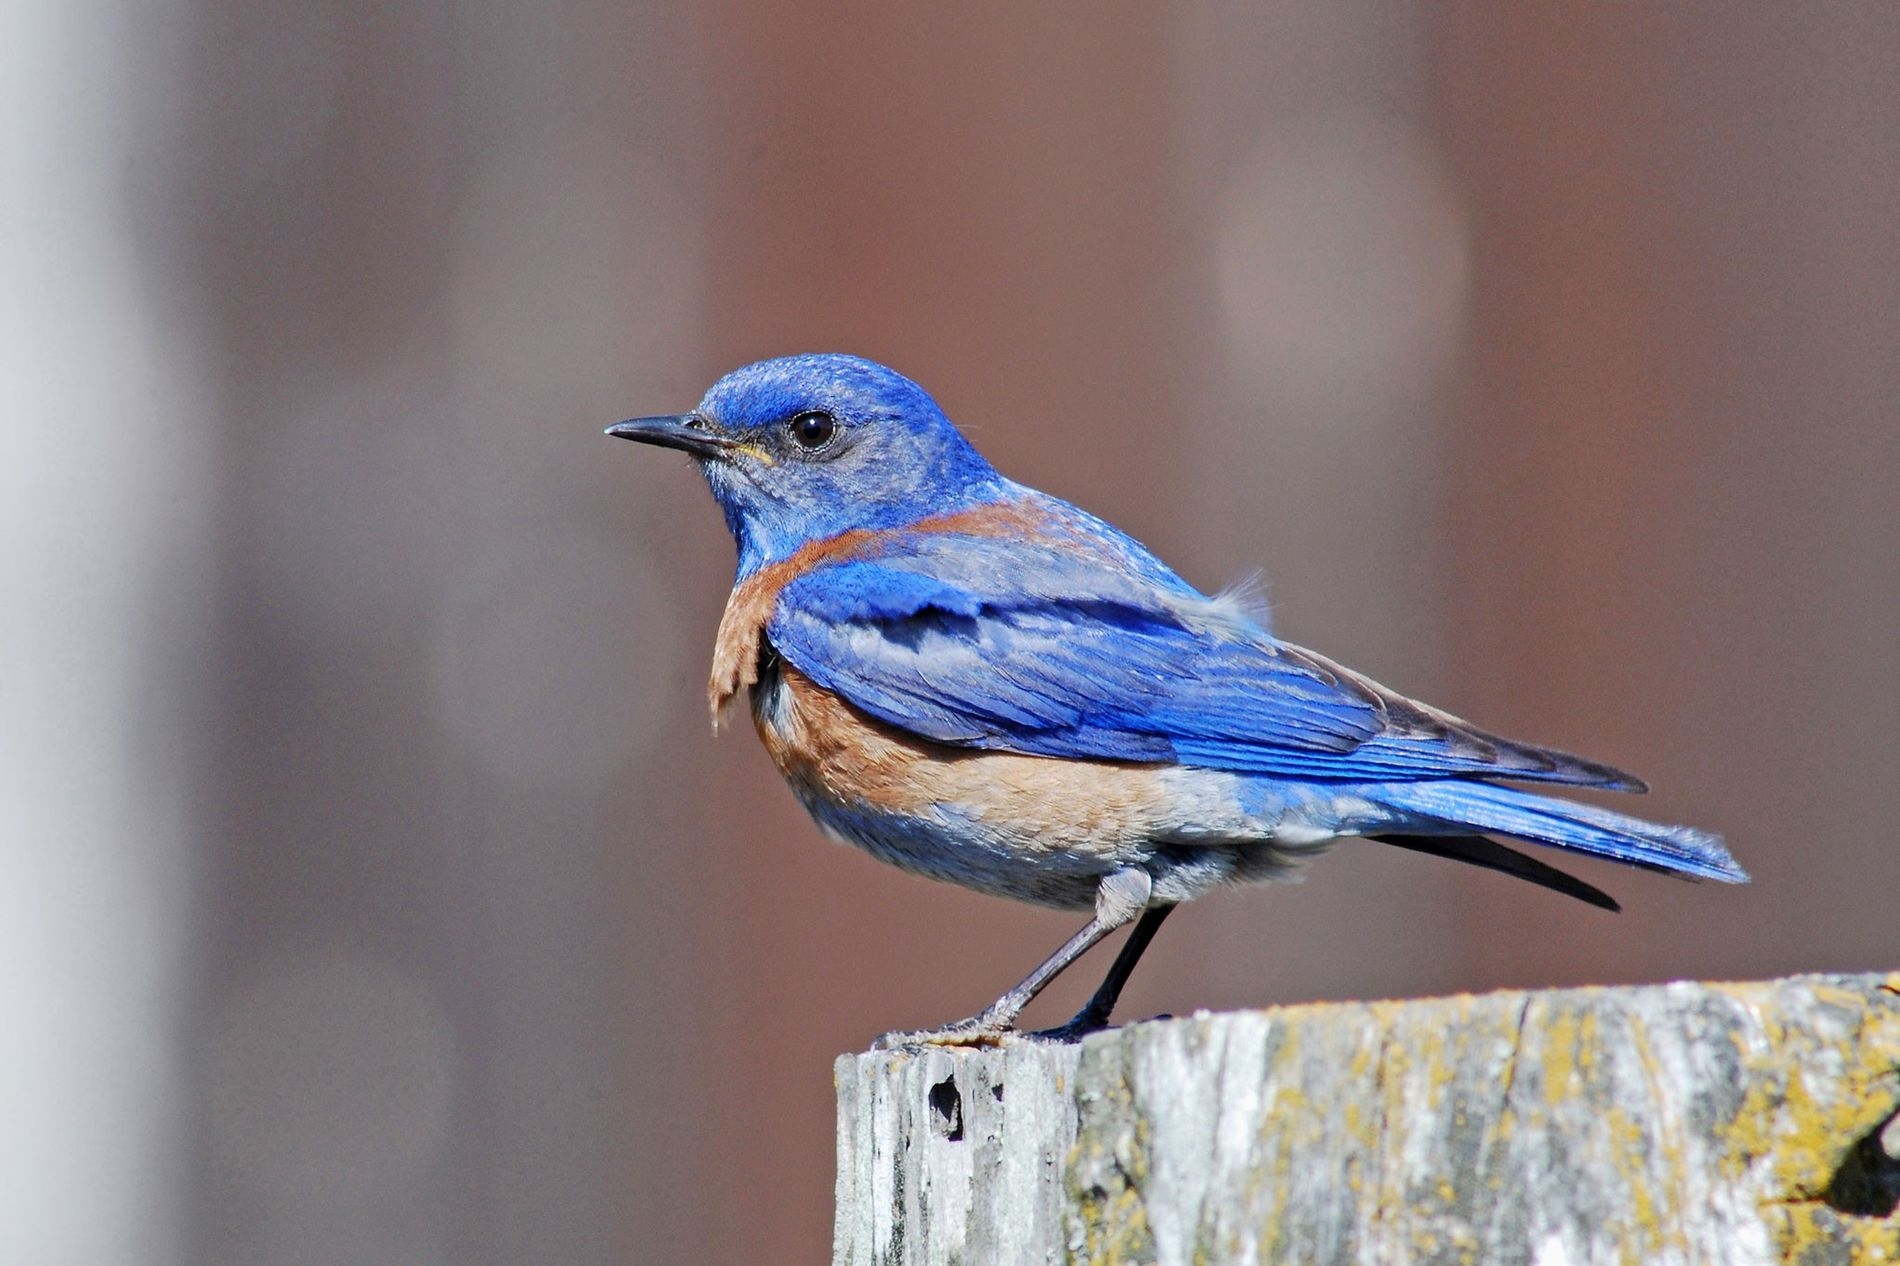 <p>Western bluebirds nesting near oil and gas operations may not realize how harmful it can be to themselves and their young.</p>